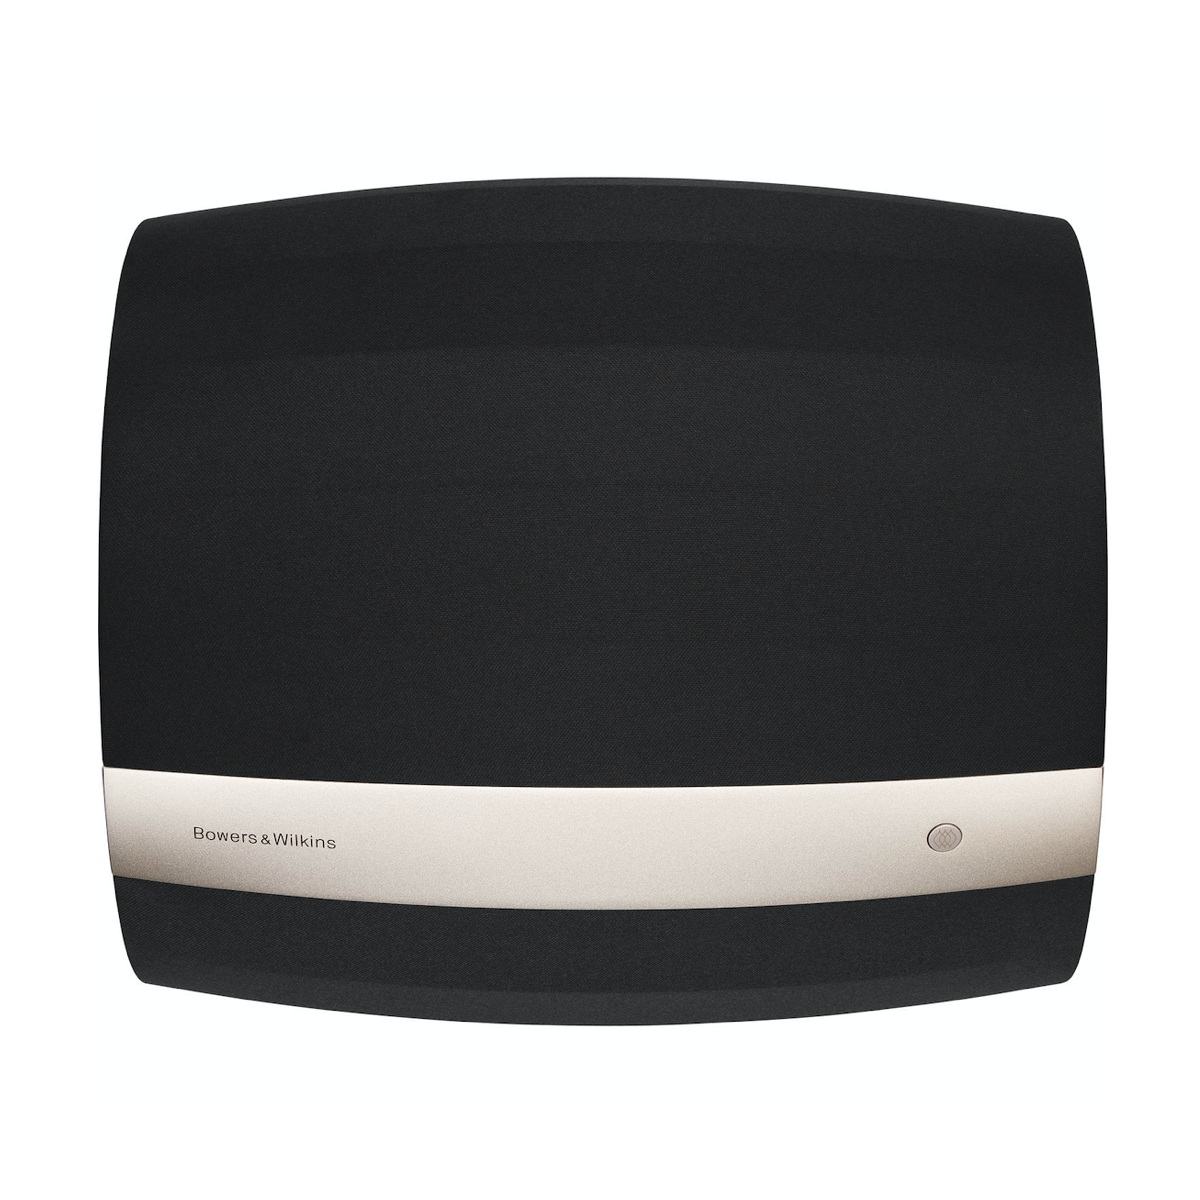 Bowers & Wilkins - Formation Bass, Bowers & Wilkins, Active Subwoofer - Auratech LLC